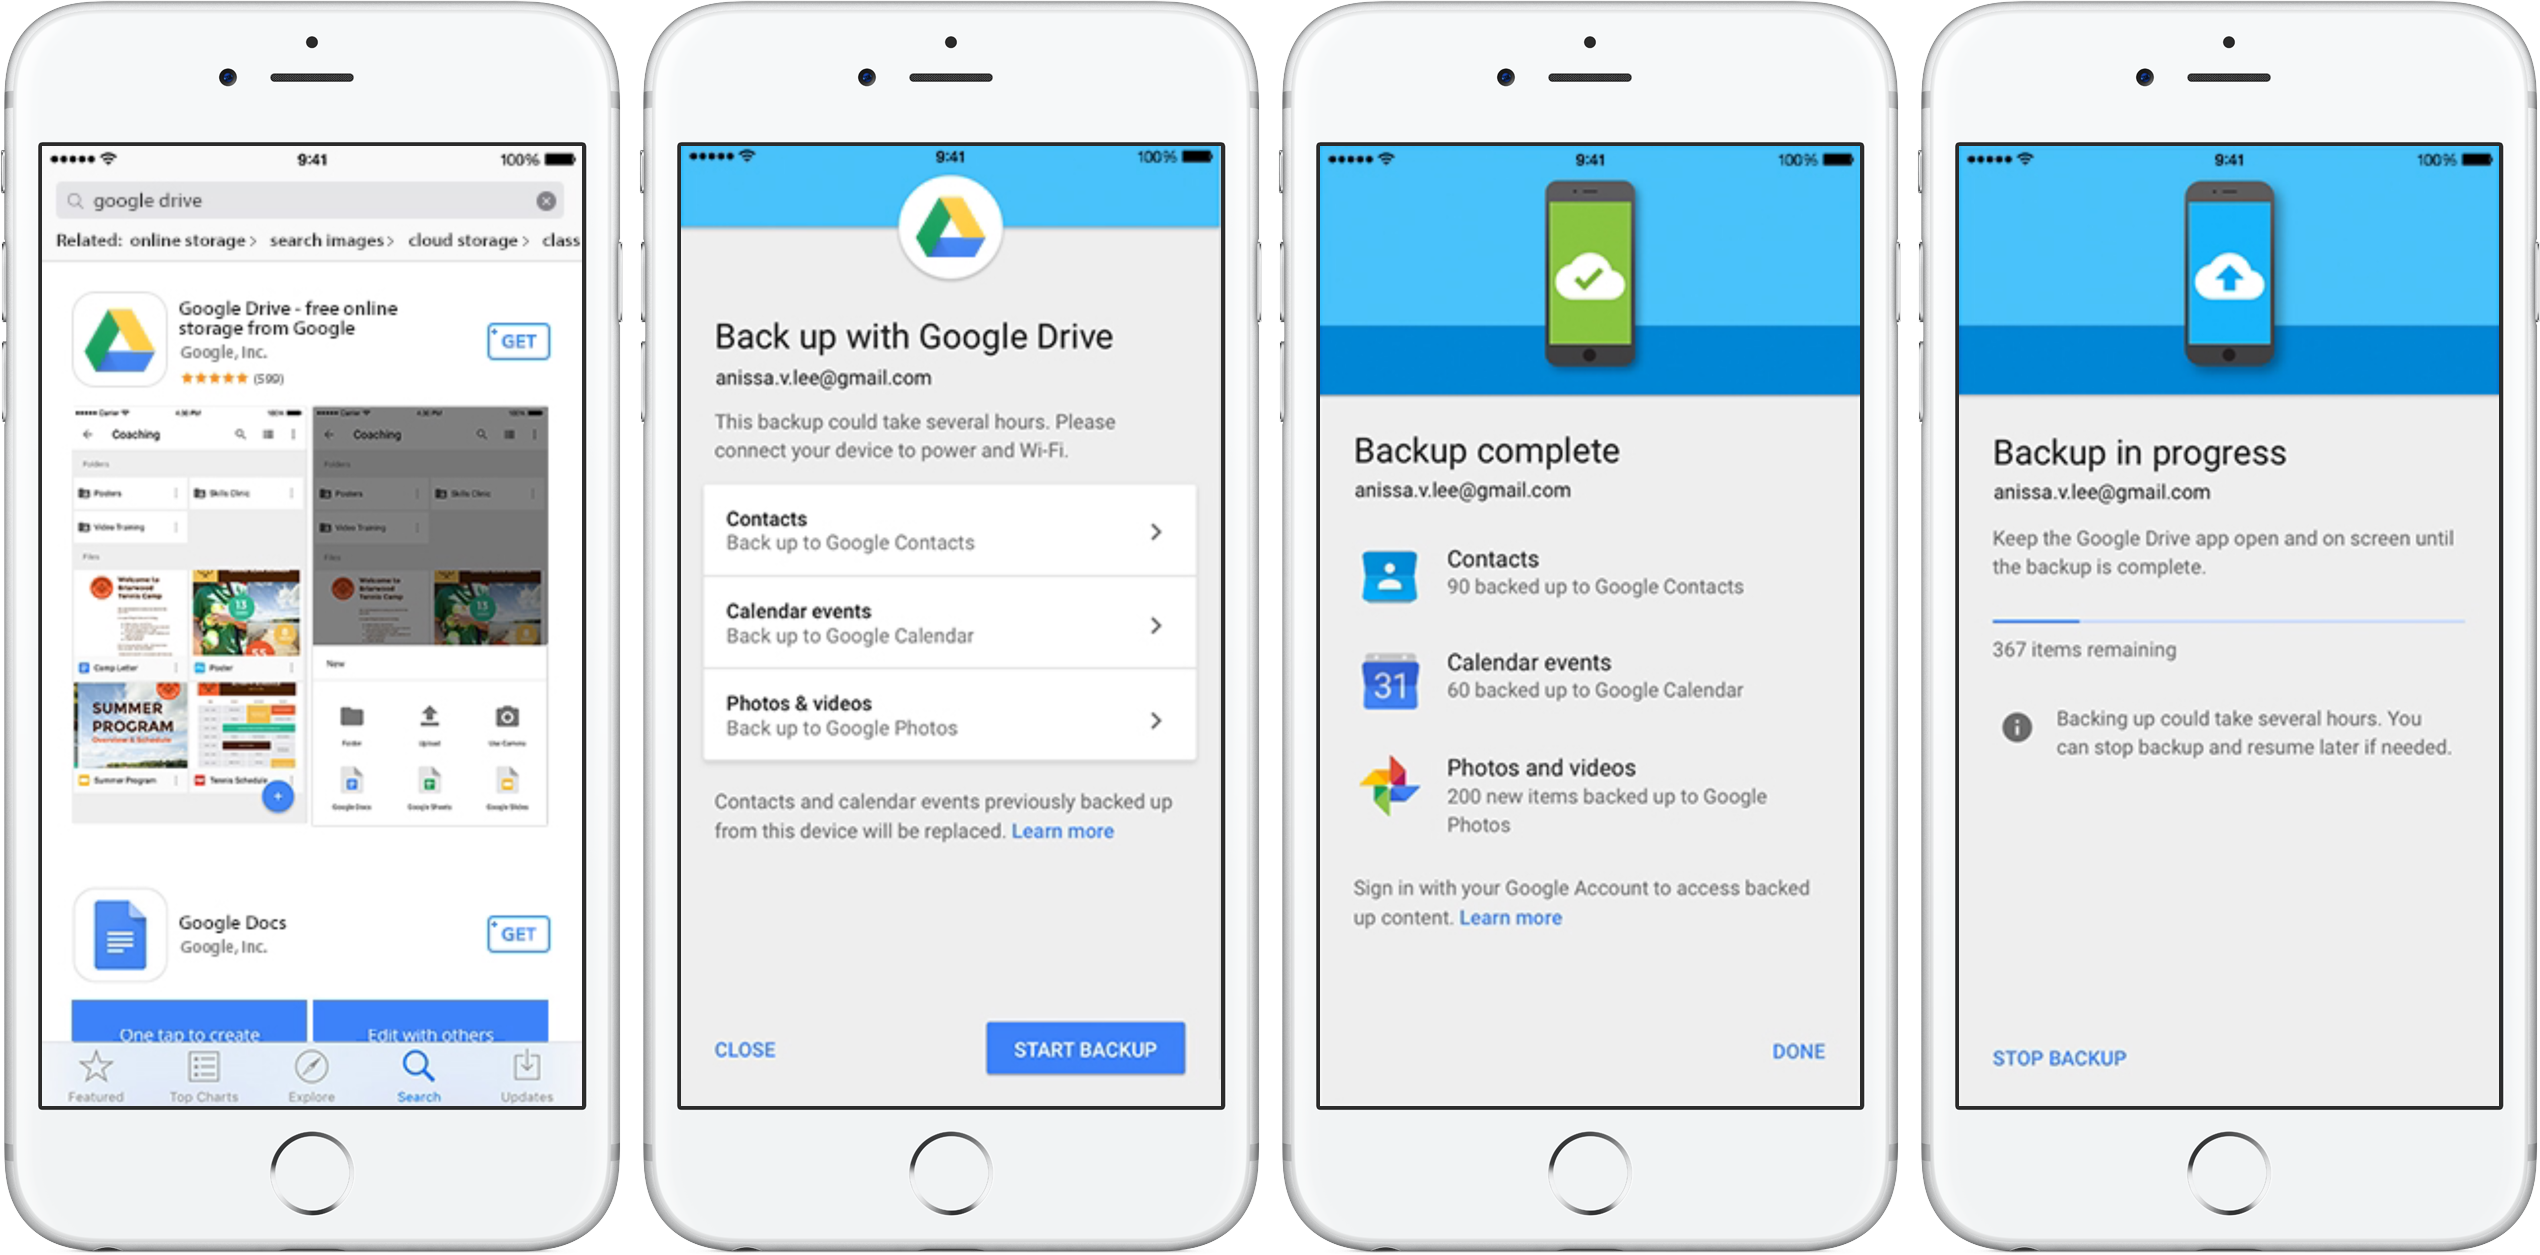 Android Calendar.Google Drive Becomes Android Migration Tool With Contacts Photos